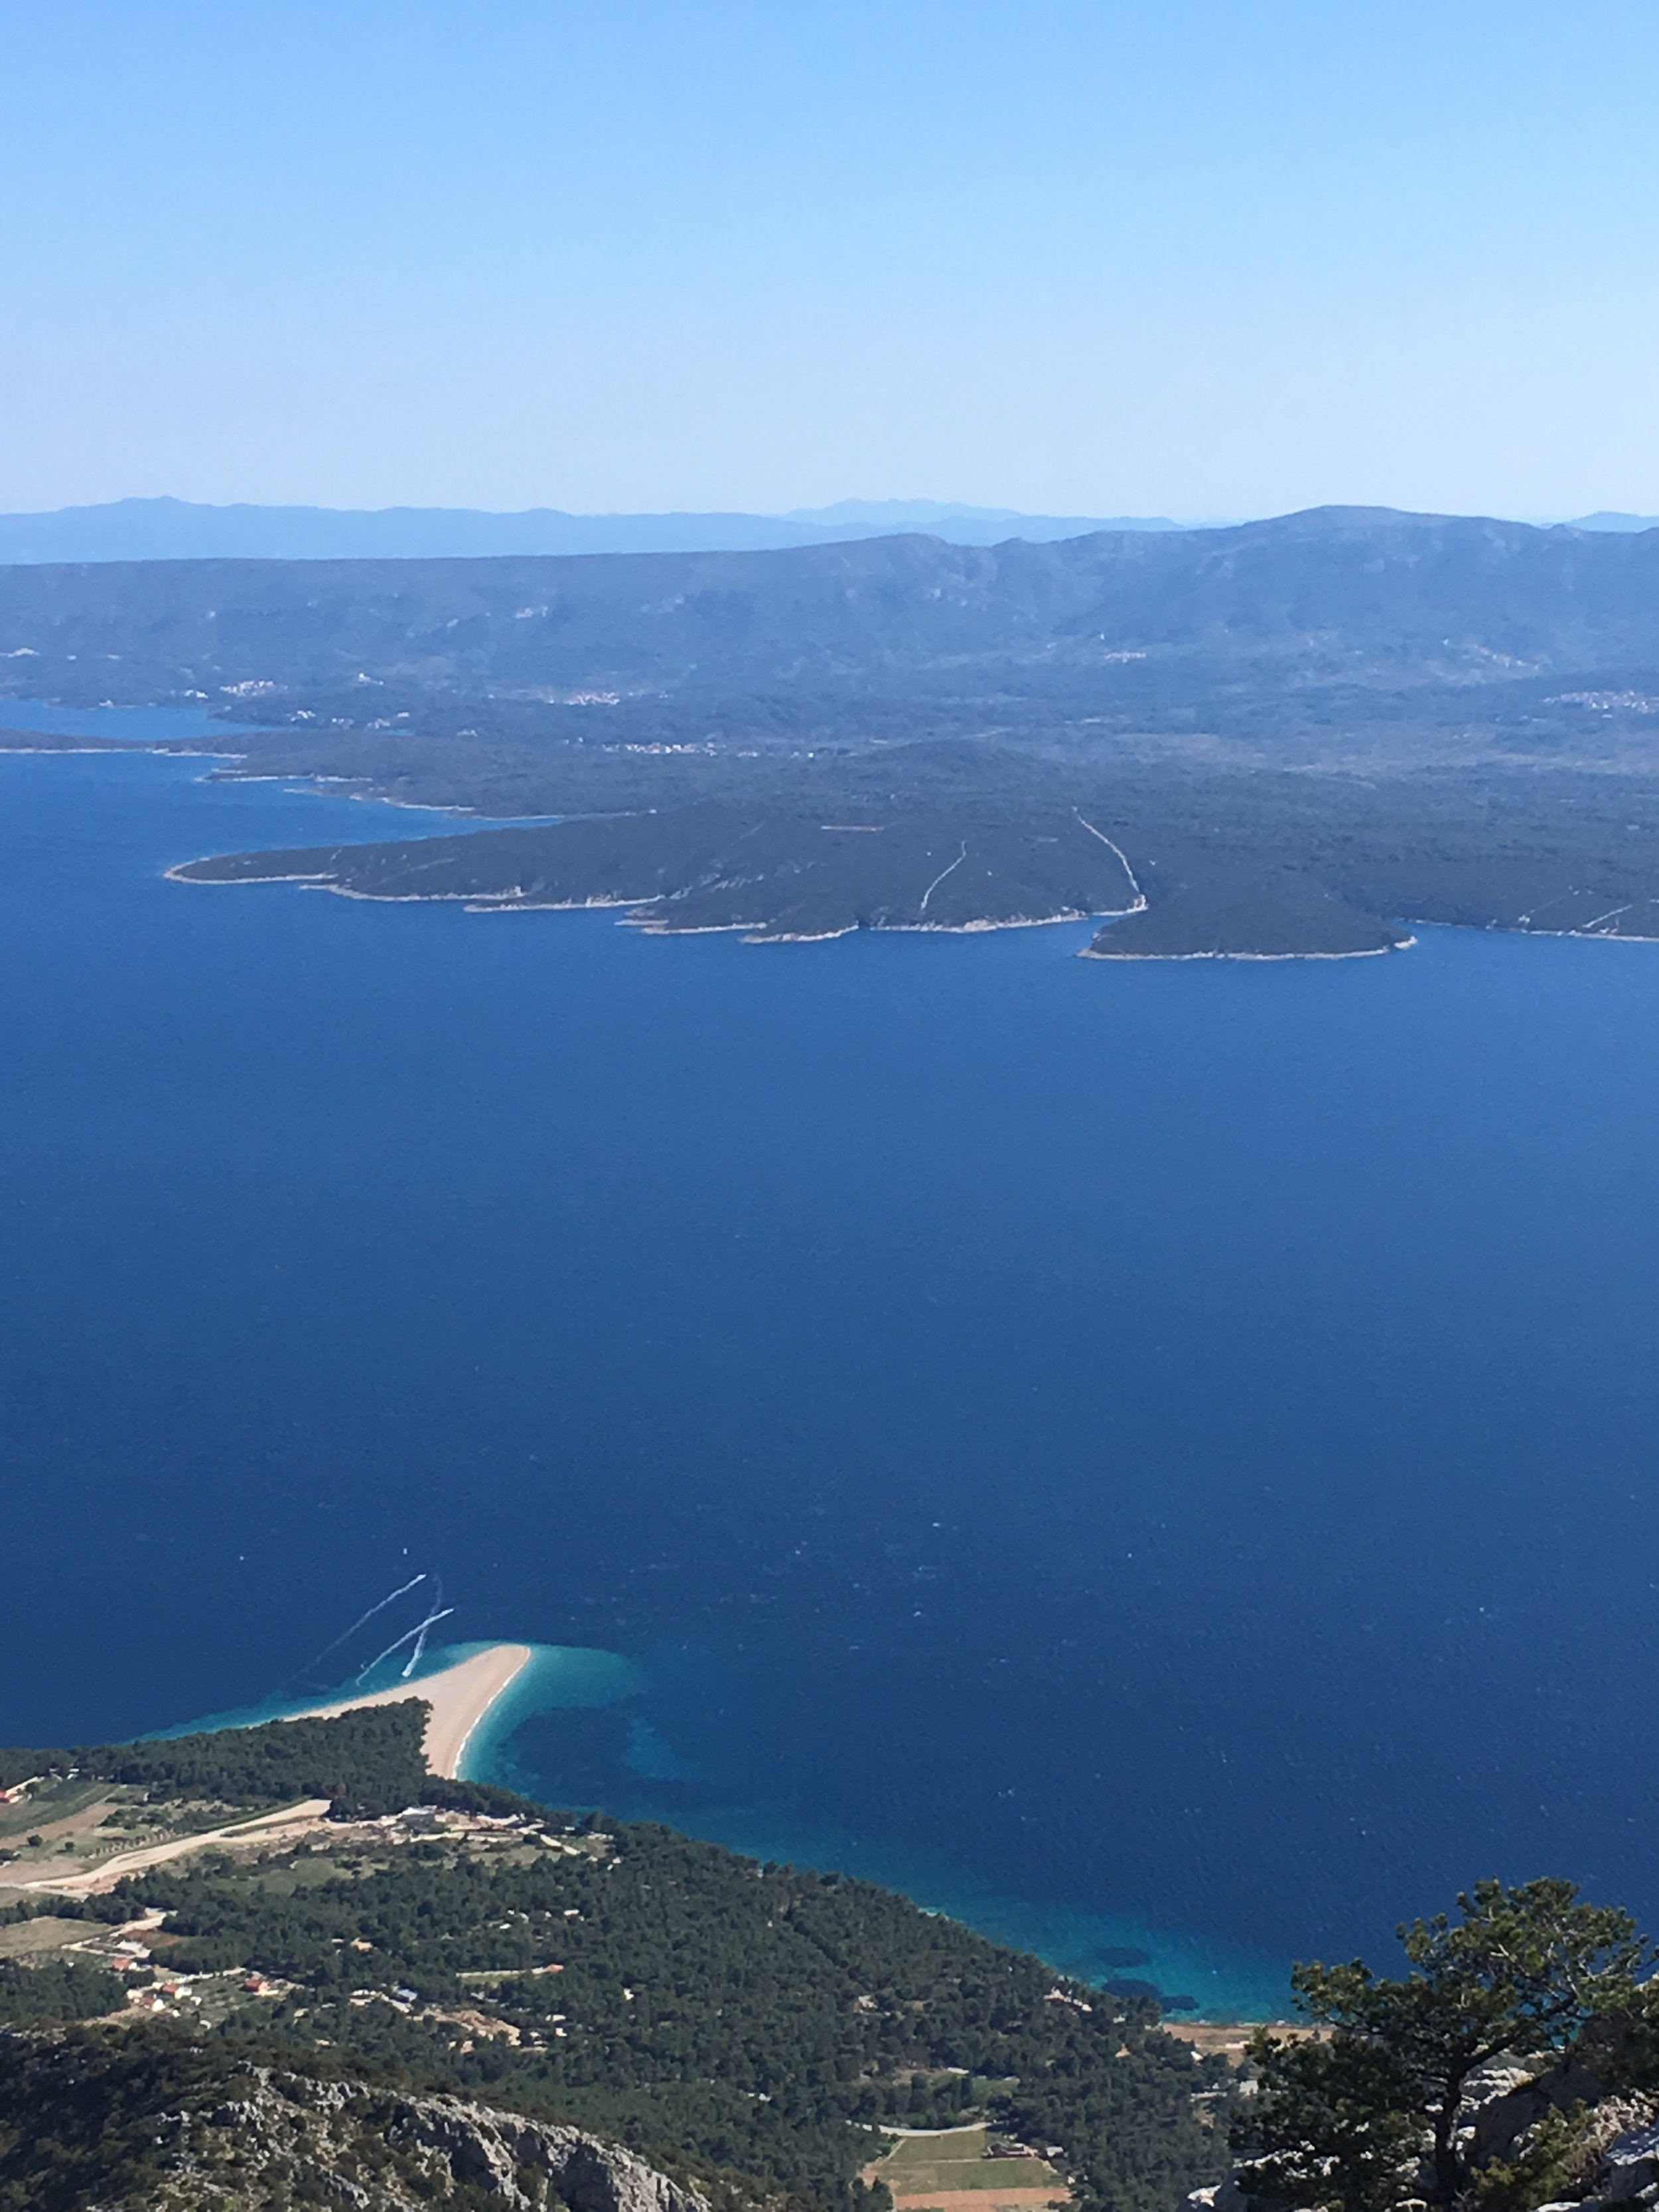 Seen from the top of Vidova Gora, the highest point in the Adriatic islands, you can see the funny little pointy beach of Rat